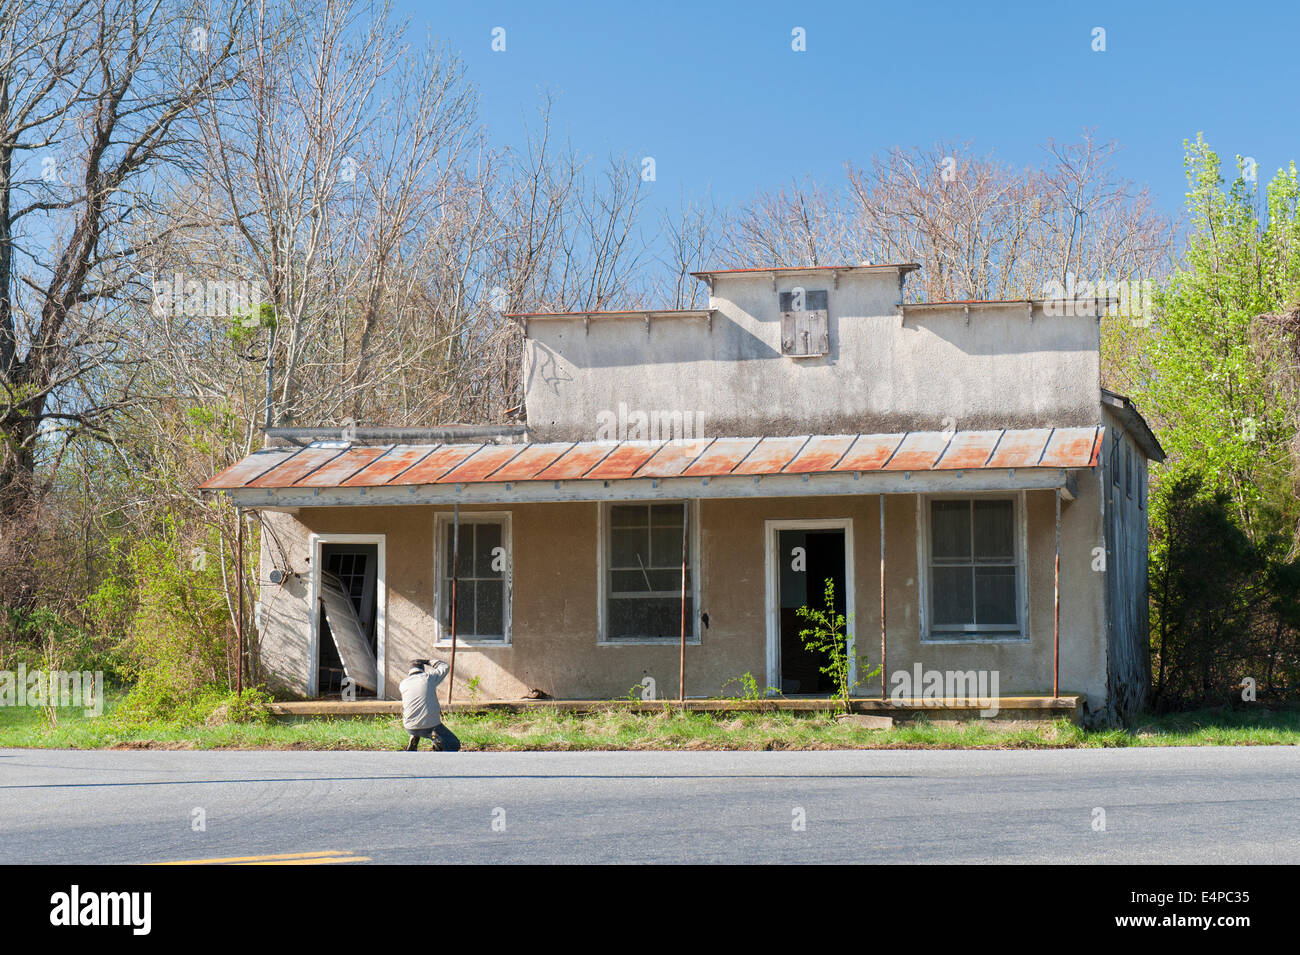 Photographer taking a picture of an old abandoned house. - Stock Image